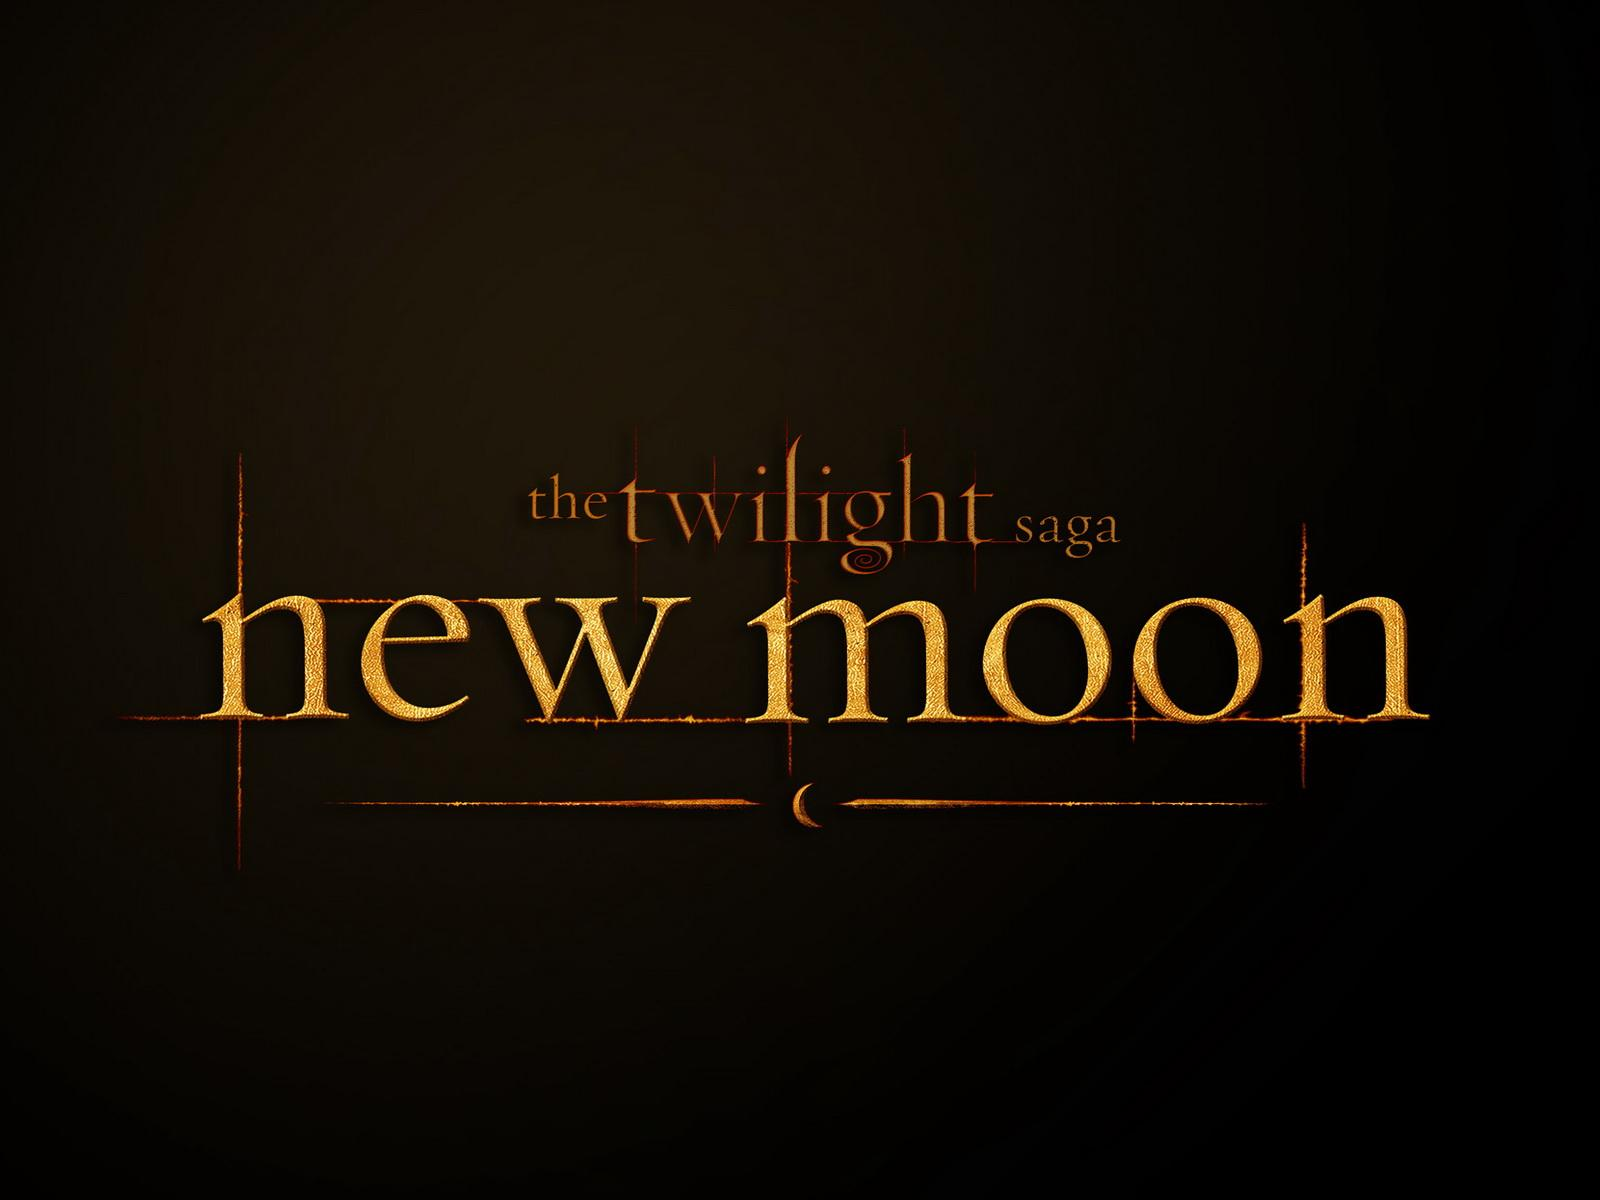 Обои Twilight Saga New Moon 1600x1200